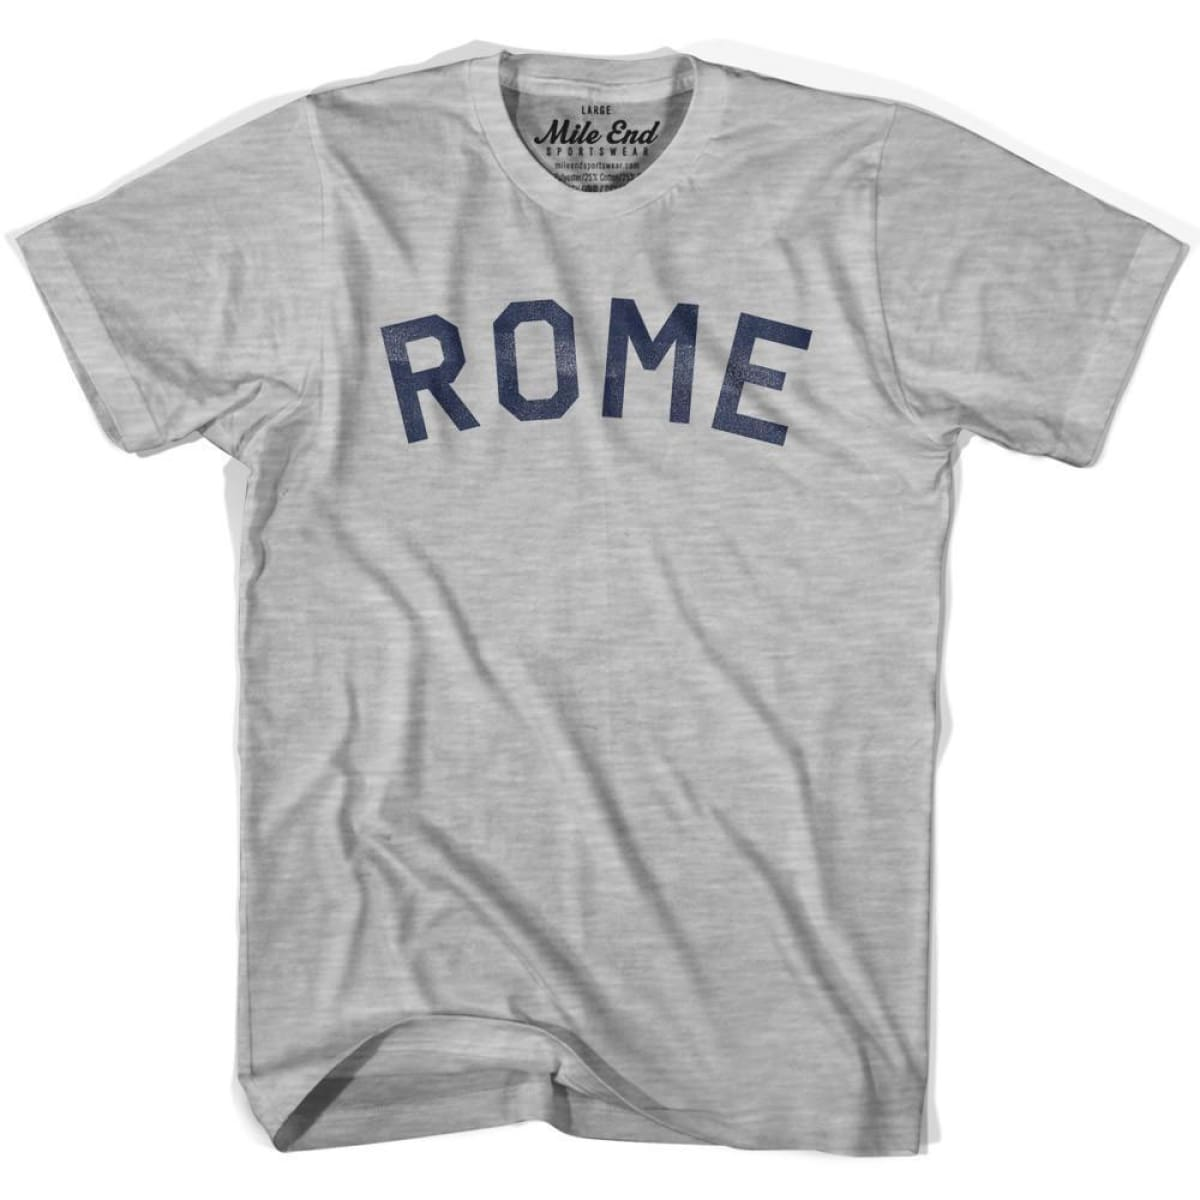 Rome City Vintage T-shirt-Adult - Grey Heather / Adult Small - Mile End City